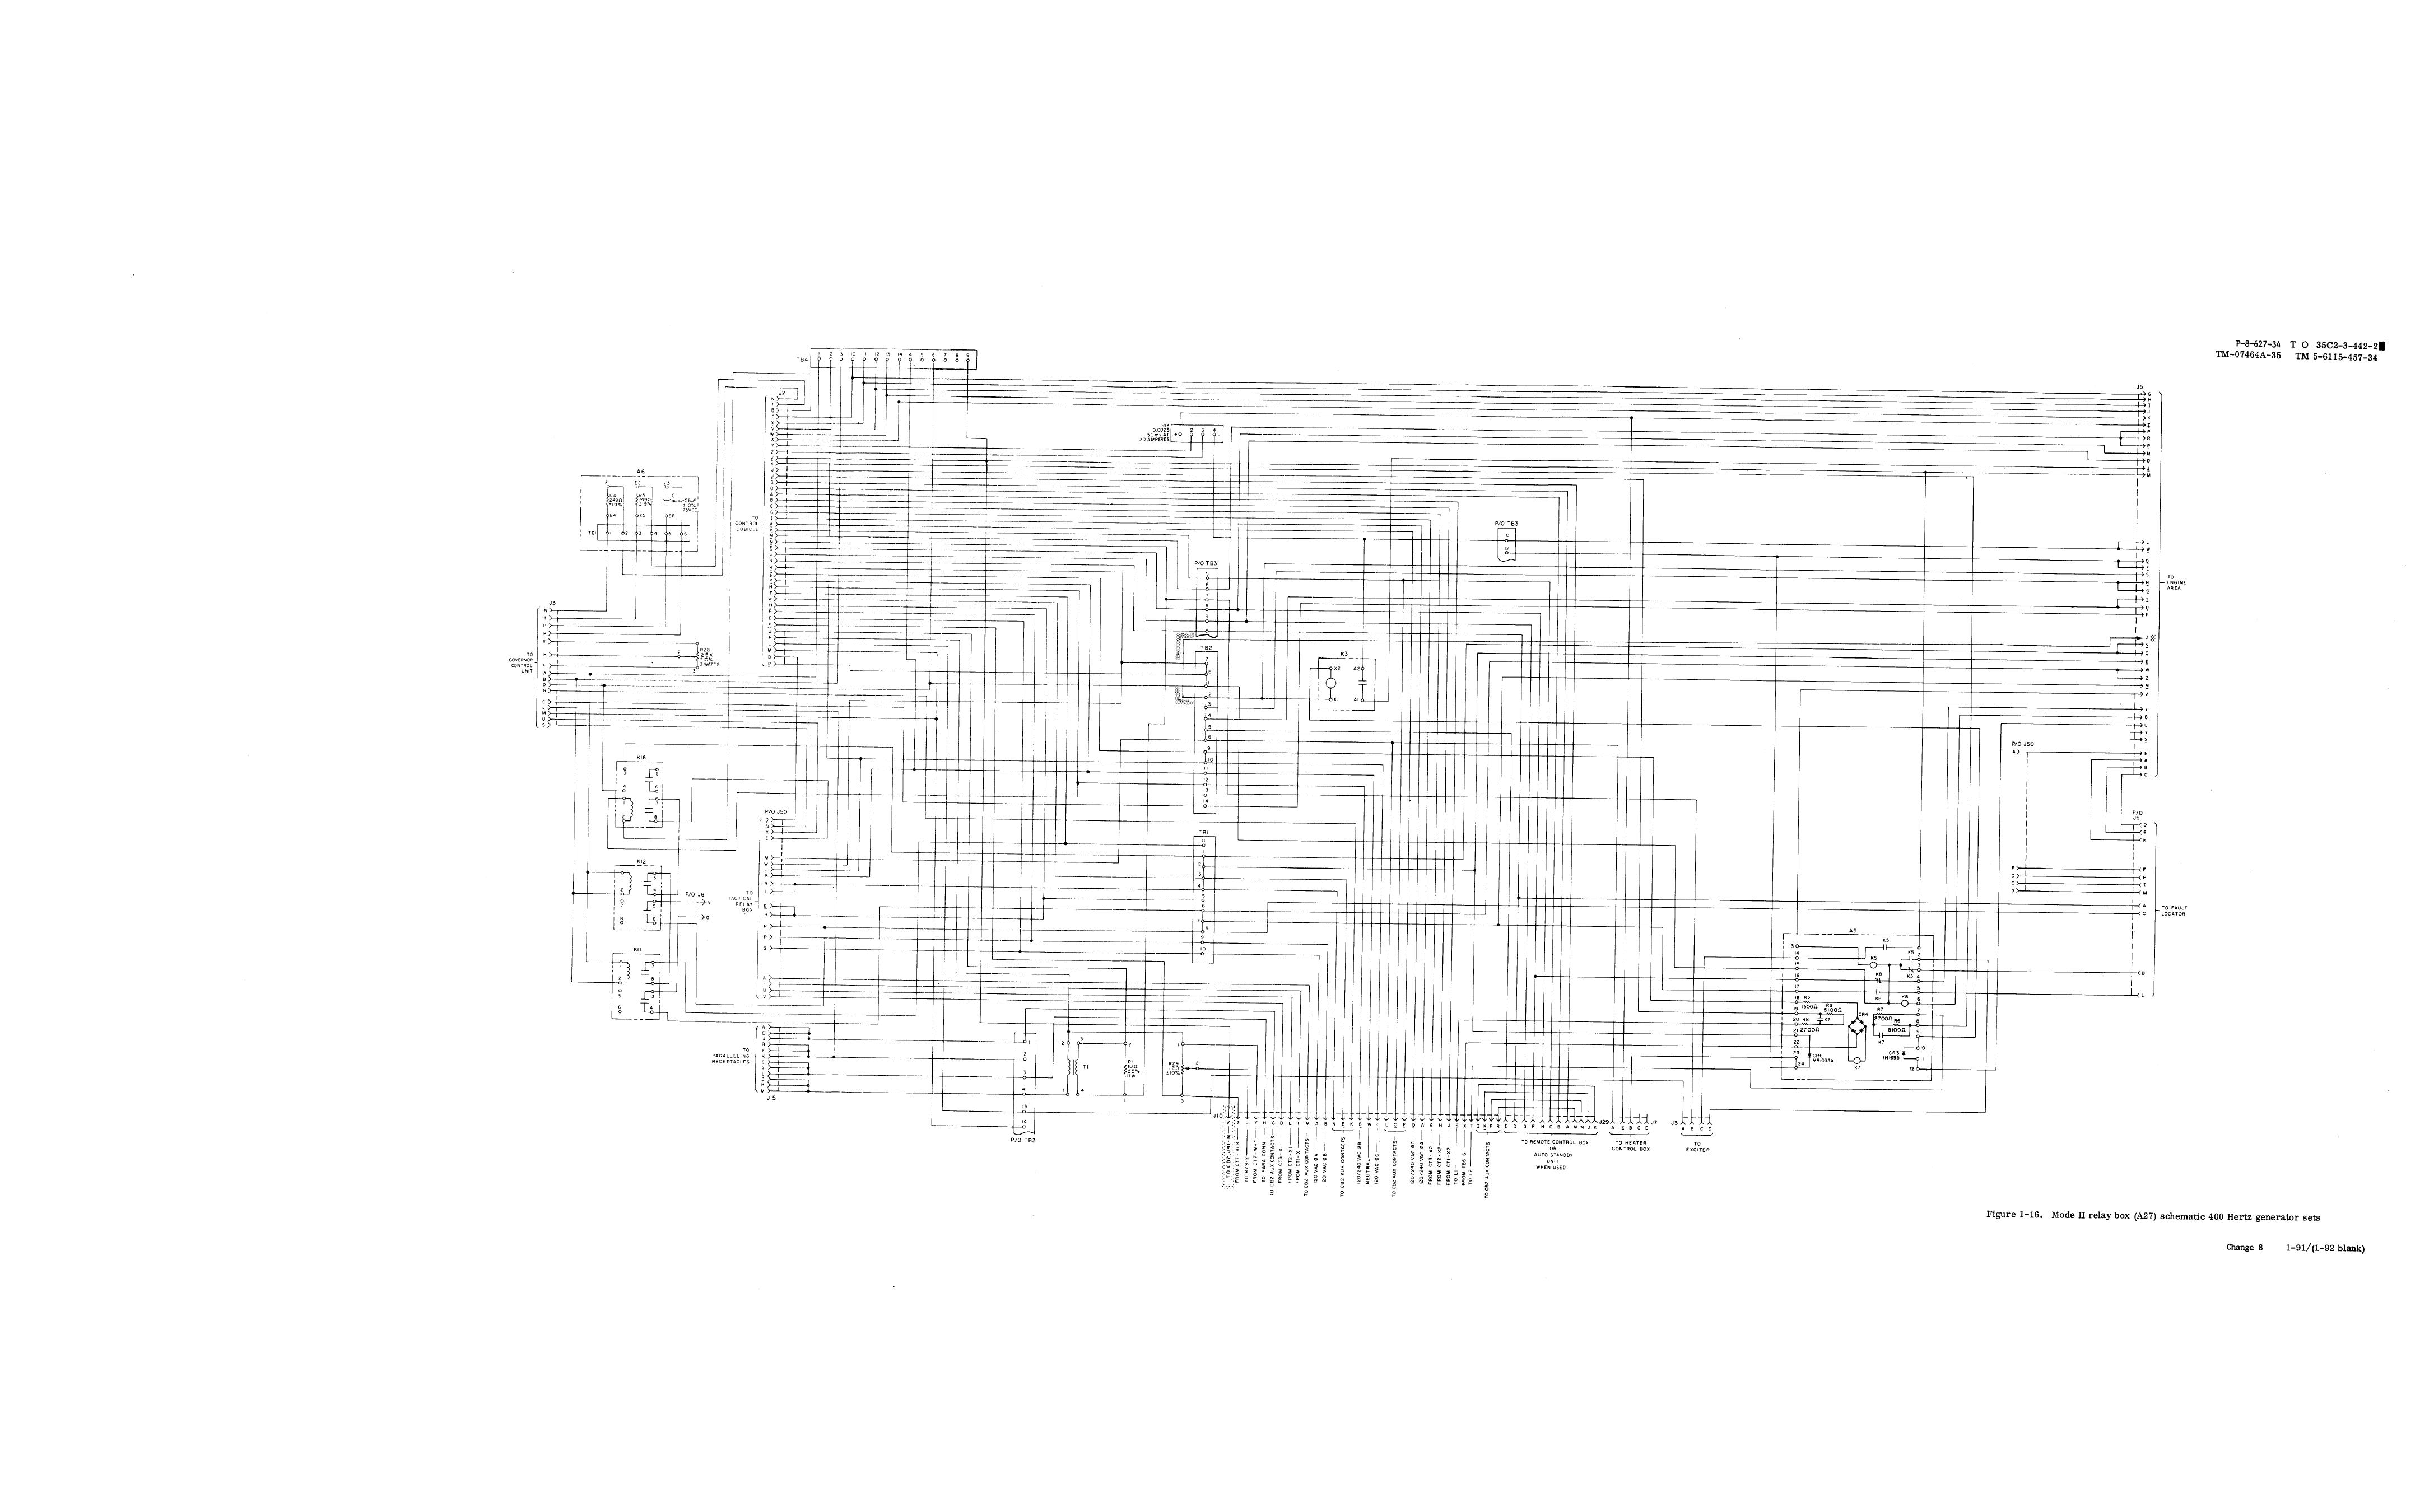 micromax a27 diagram - auto electrical wiring diagram on led circuit  diagrams, series and parallel